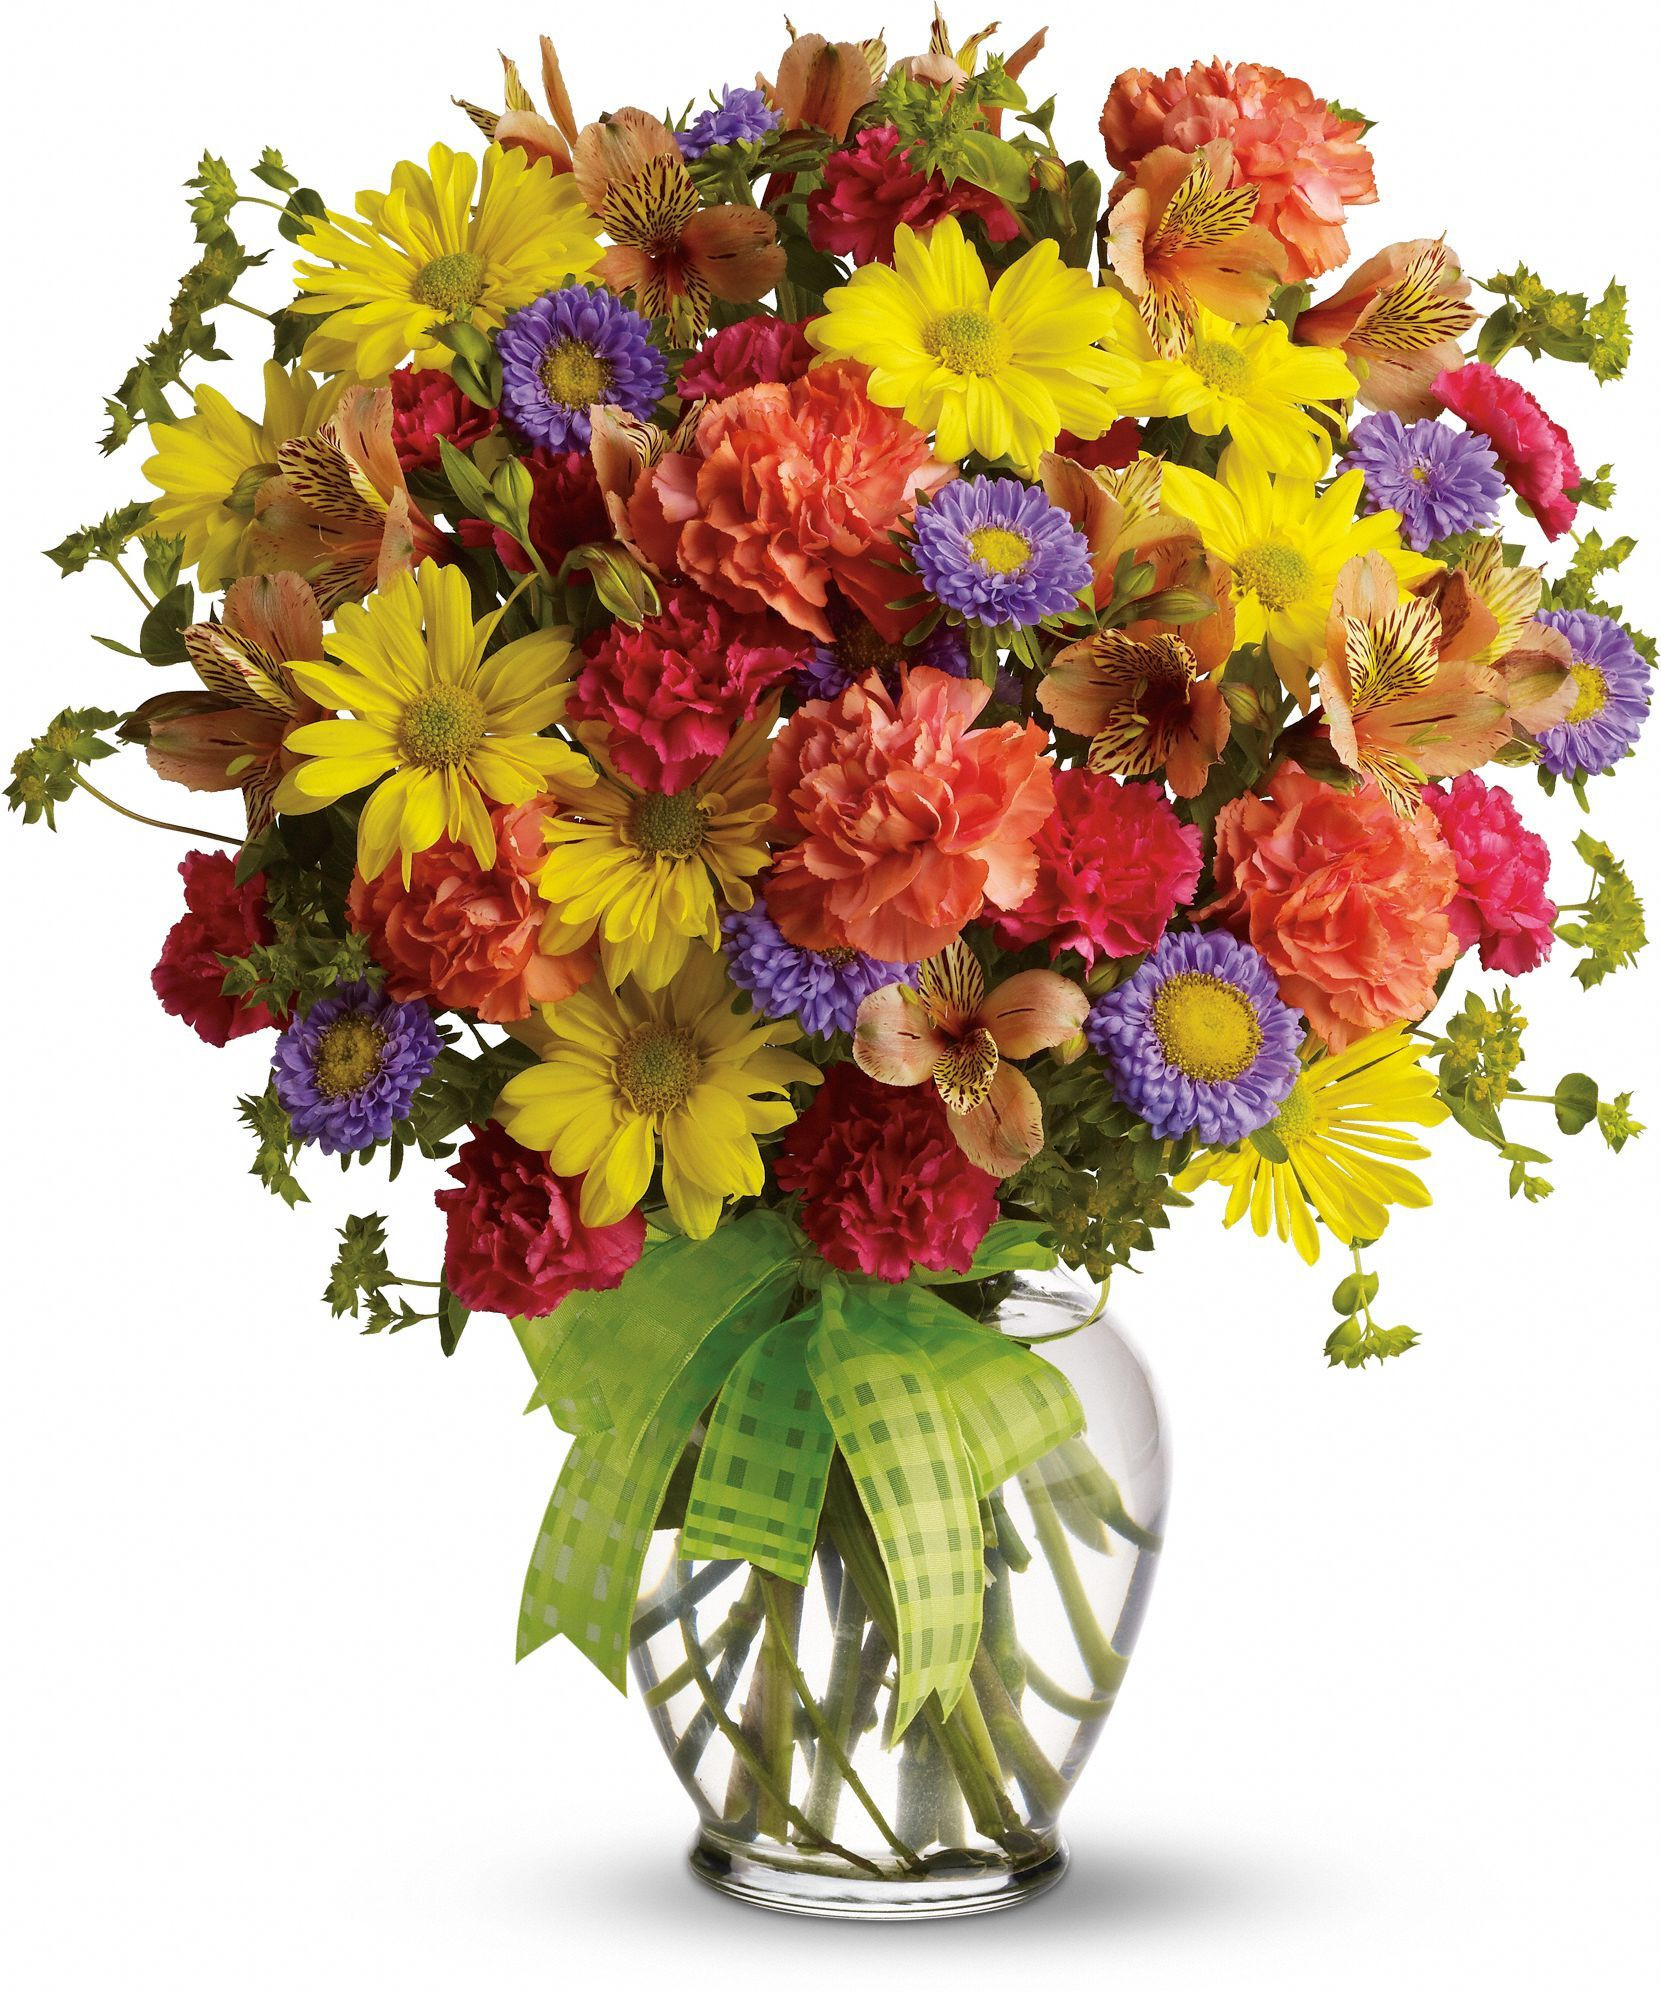 Make a Wish Save on this bouquet and many others with coupon code TFMDAYOK1B2